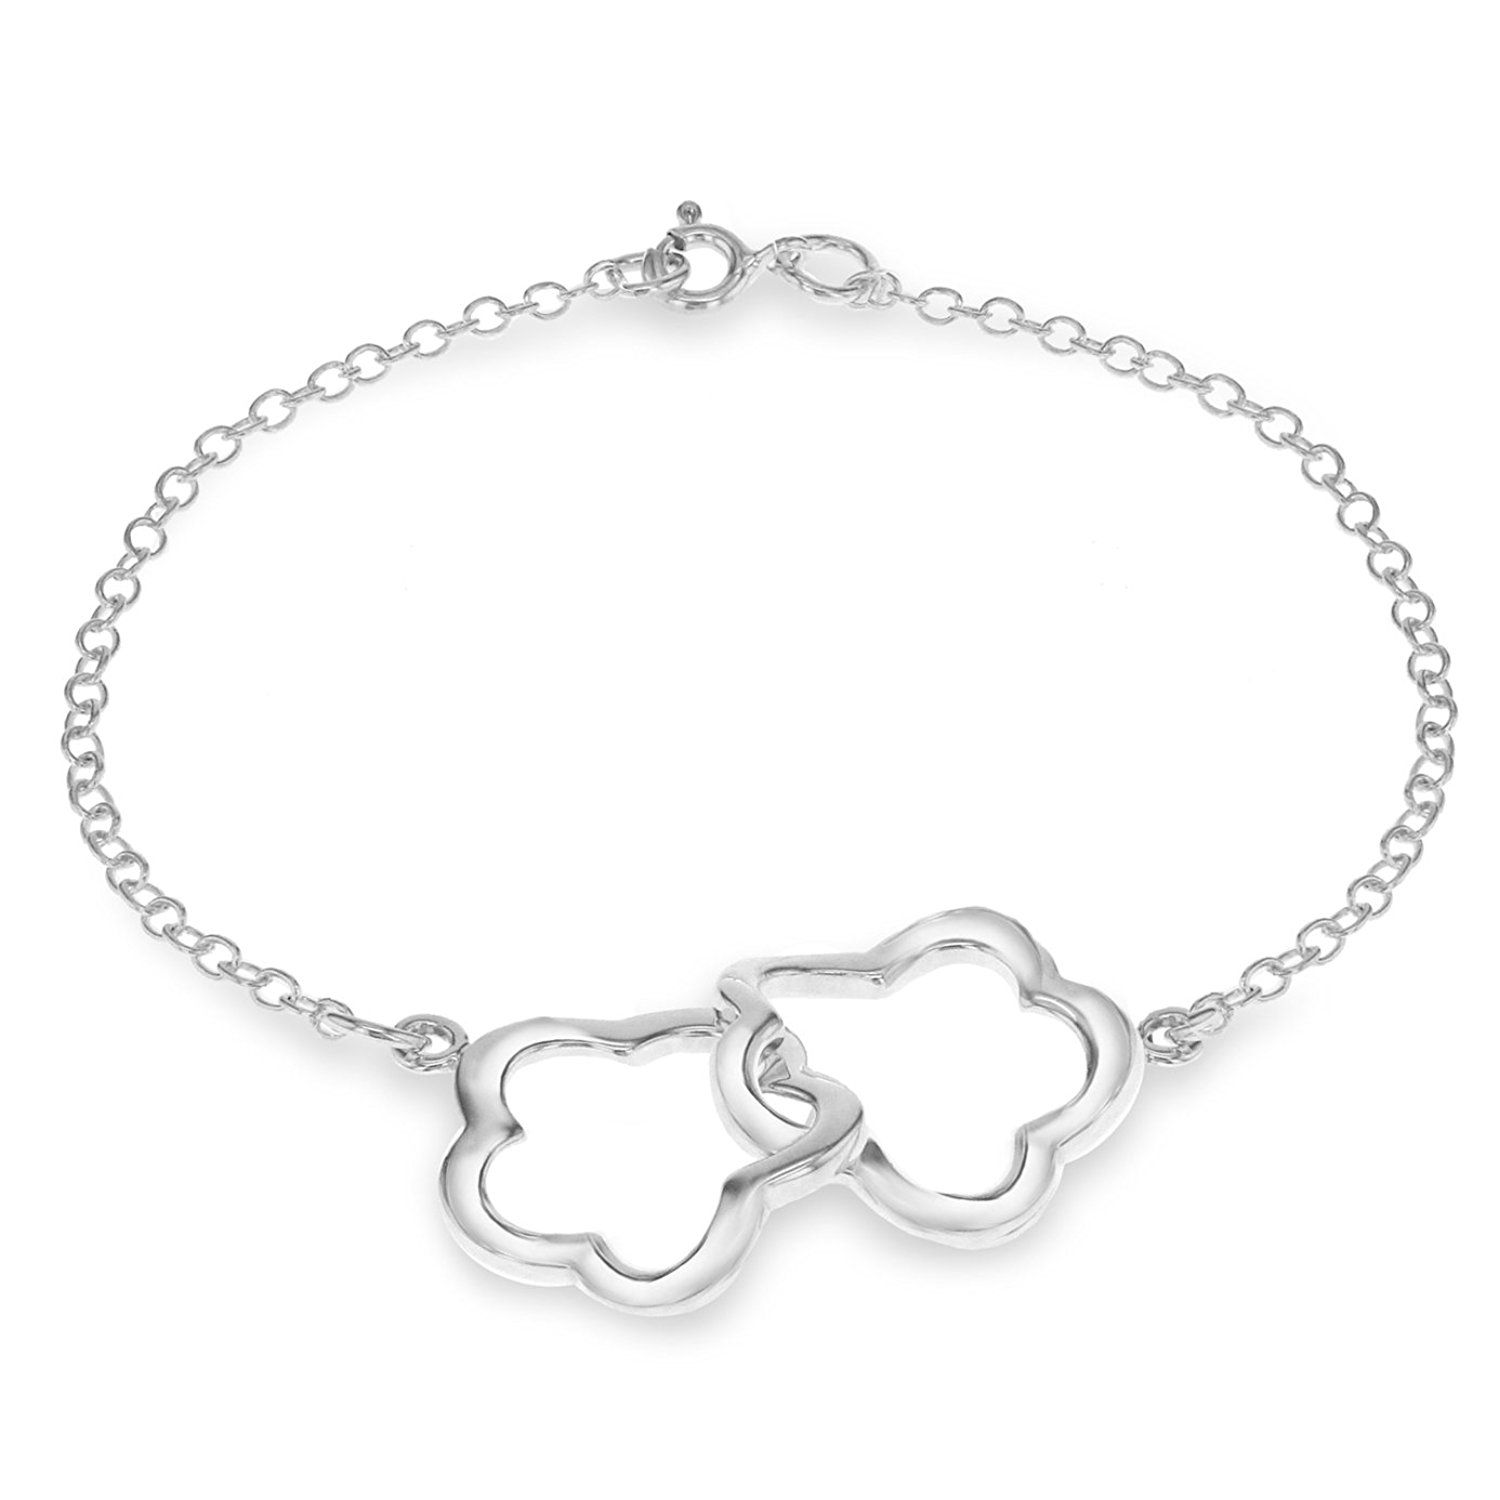 Tuscany Silver Sterling Silver Hearts and Stars Bracelet of 18cm/7 QSgGLFoGXL